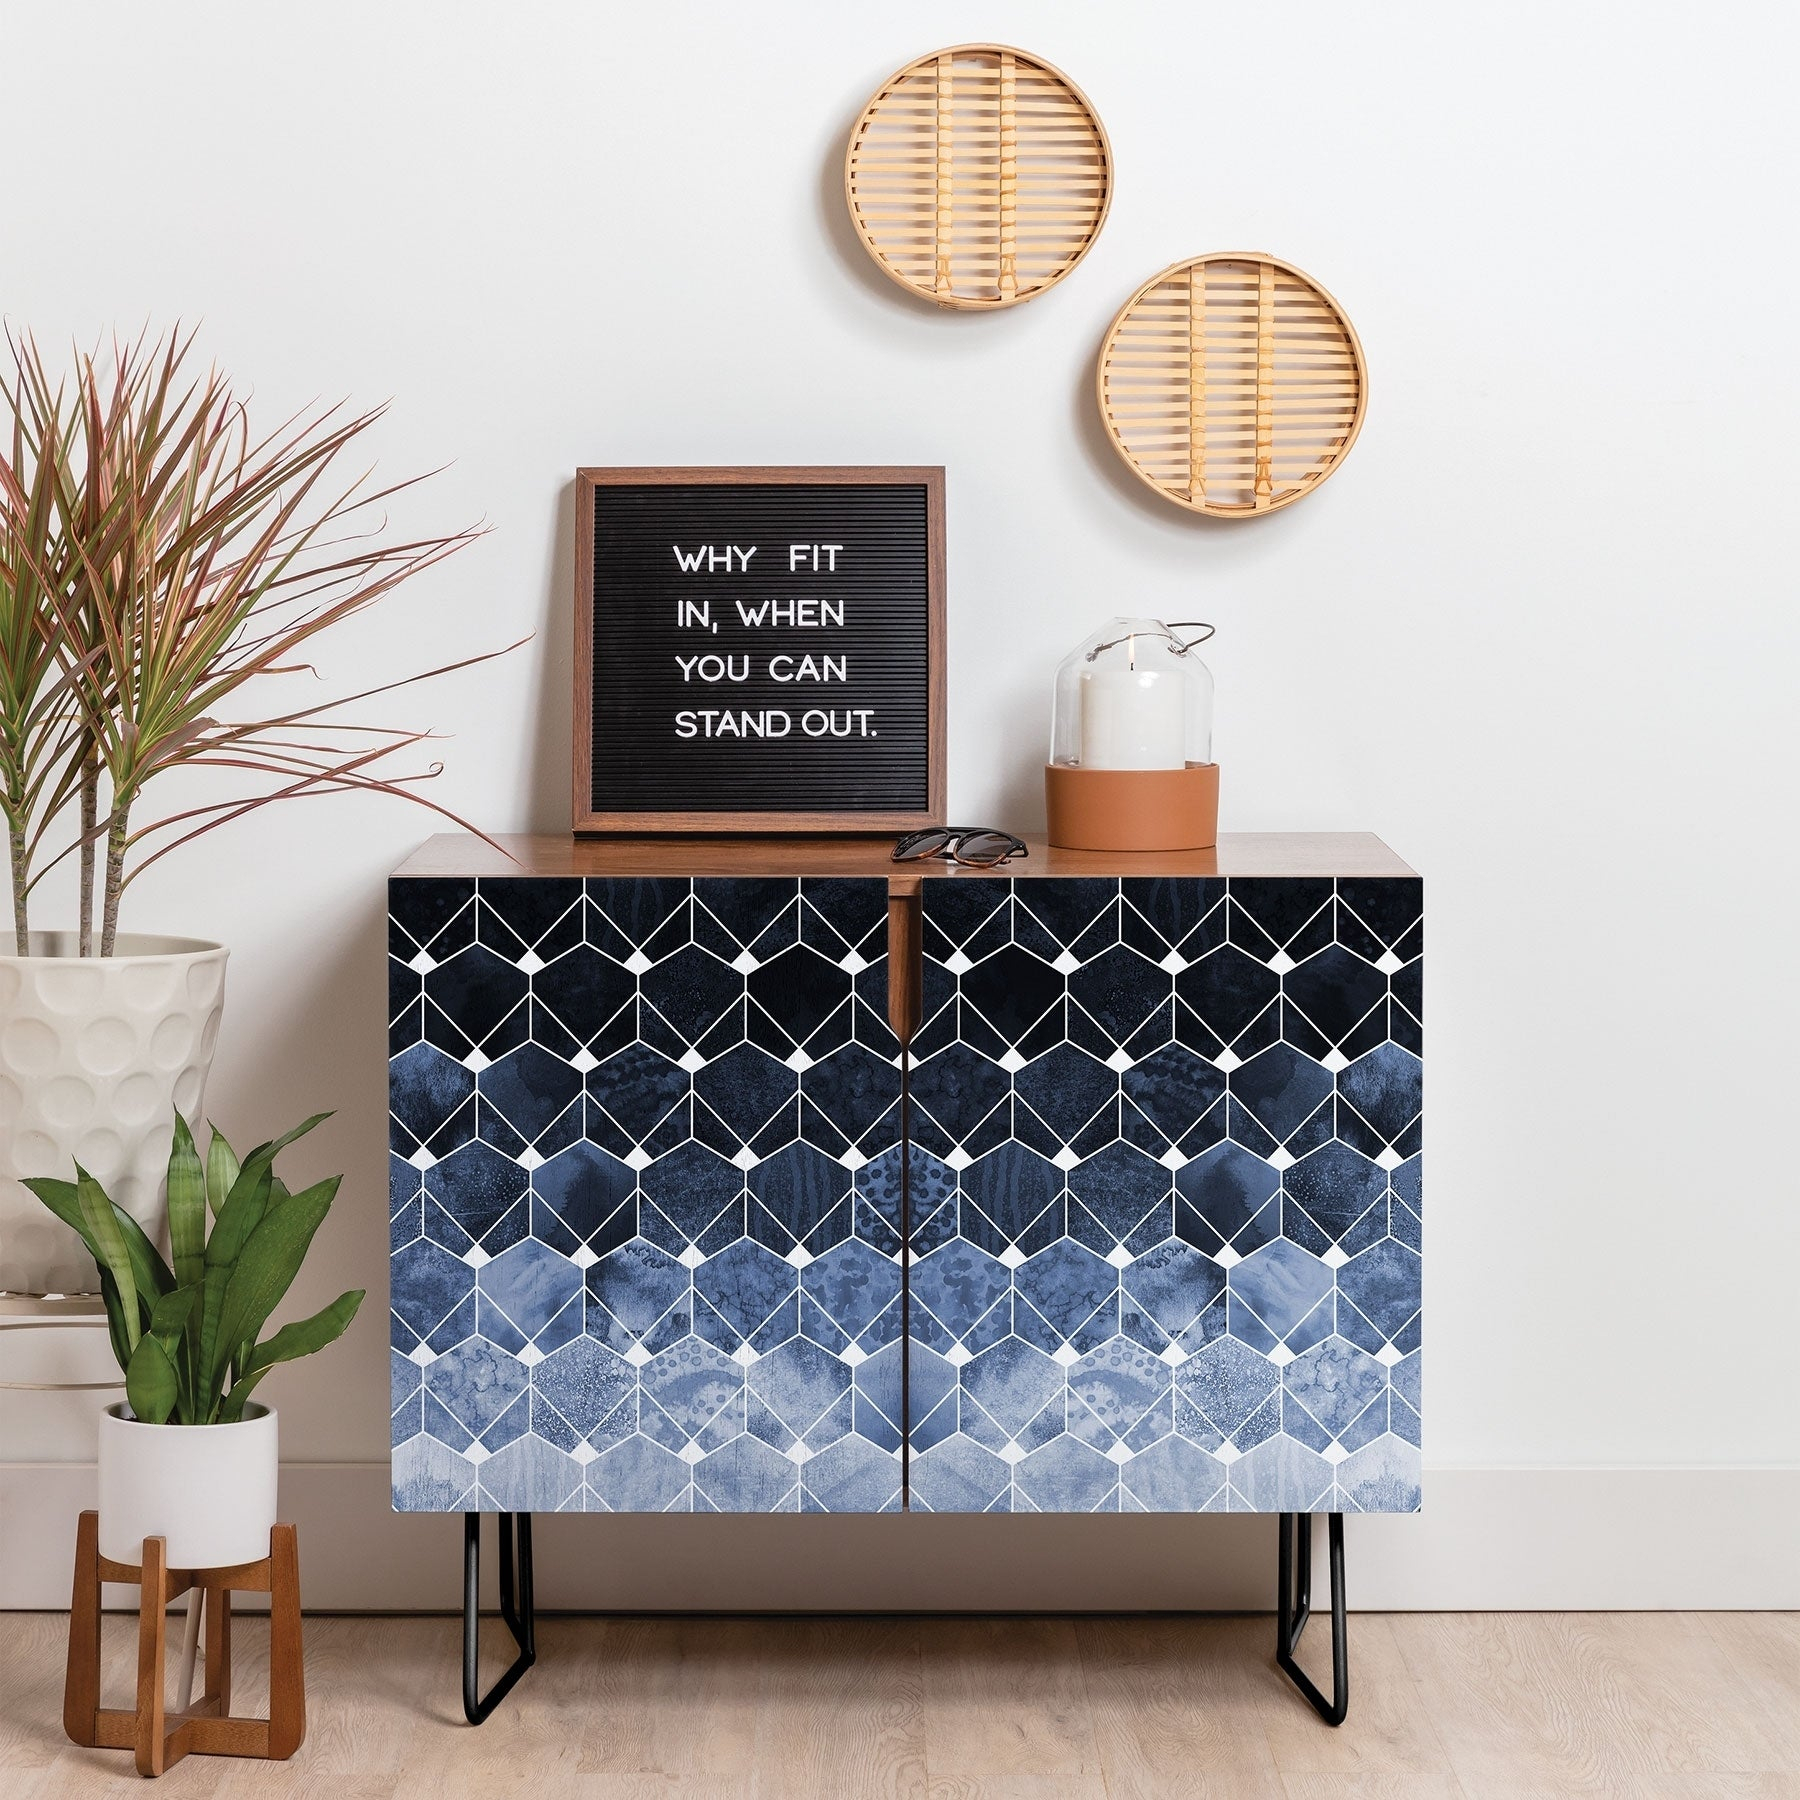 Deny Designs Blue Hexagons And Diamonds Credenza (Birch Or Walnut, 2 Leg Options) Throughout Blue Hexagons And Diamonds Credenzas (Gallery 3 of 30)